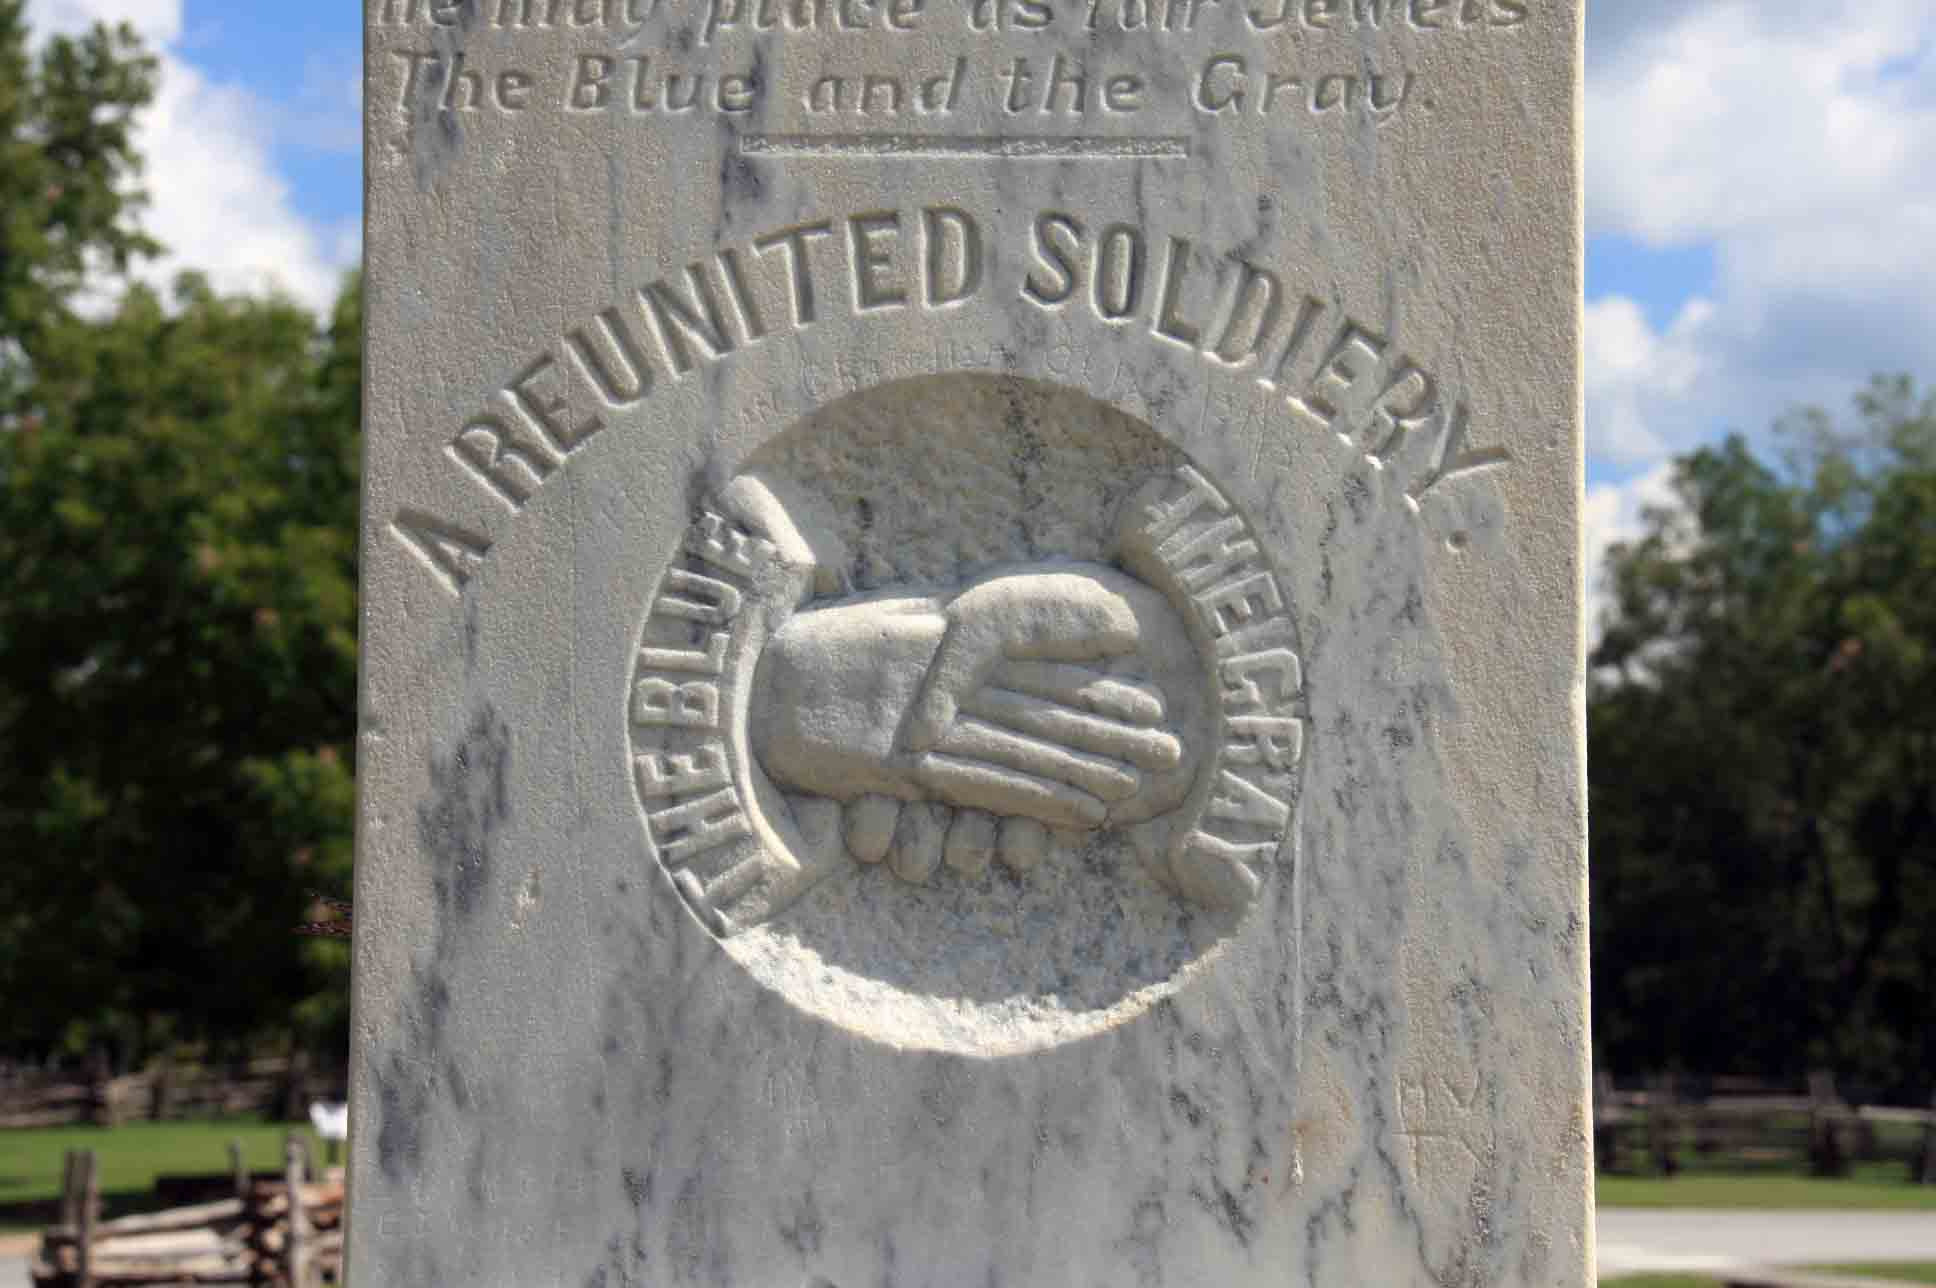 Reunited Soldiery Monument, click photo to enlarge.